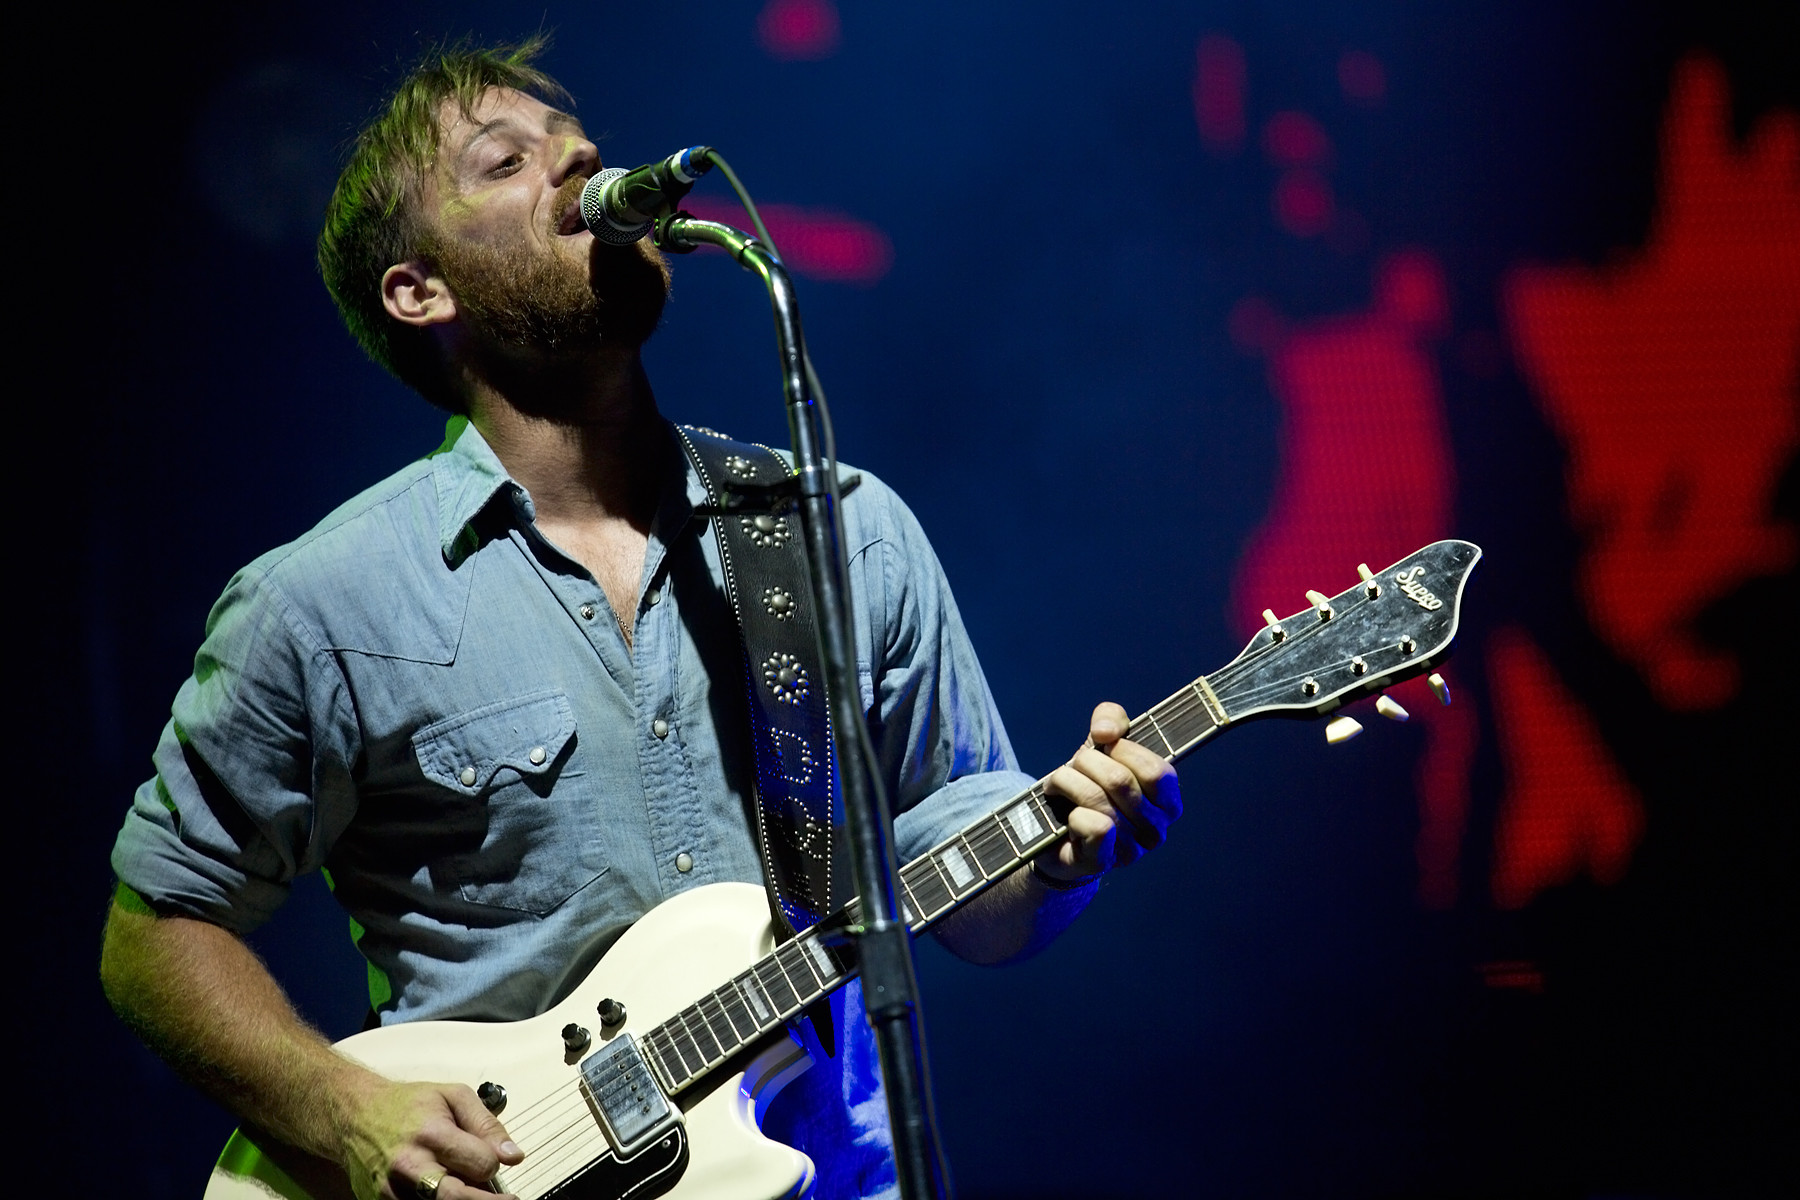 The Black Keys @ Lollapalooza 2012